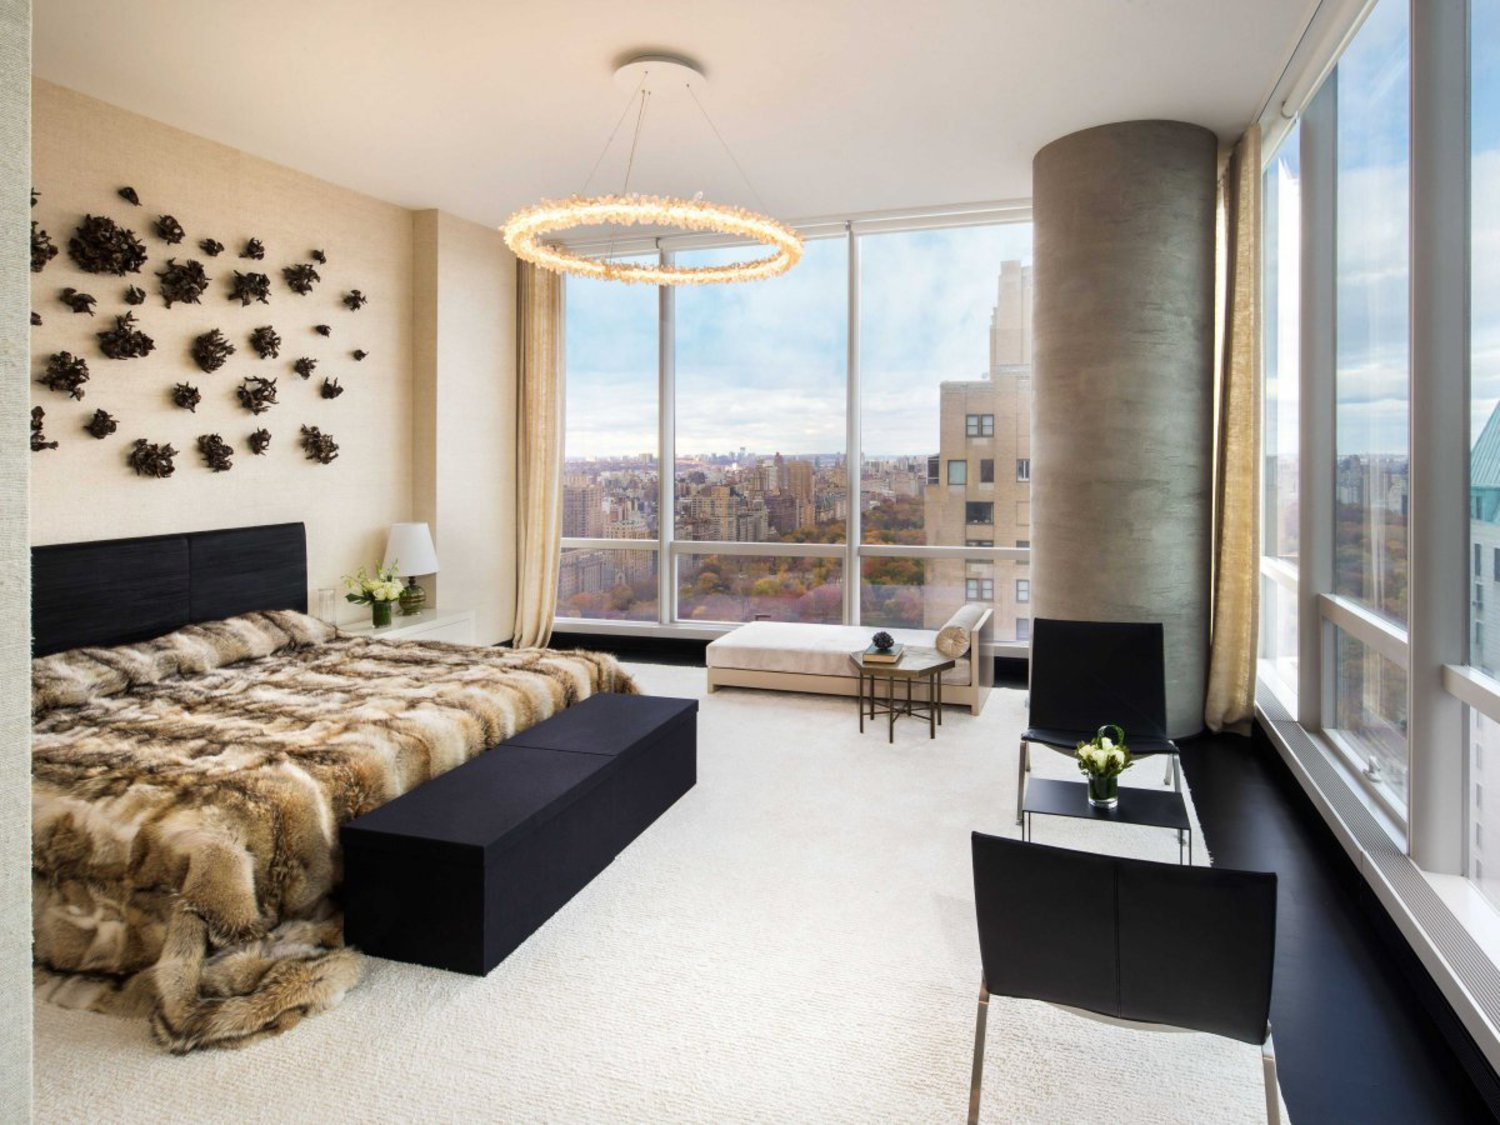 The units range from one bedroom to the six-bedroom penthouses.